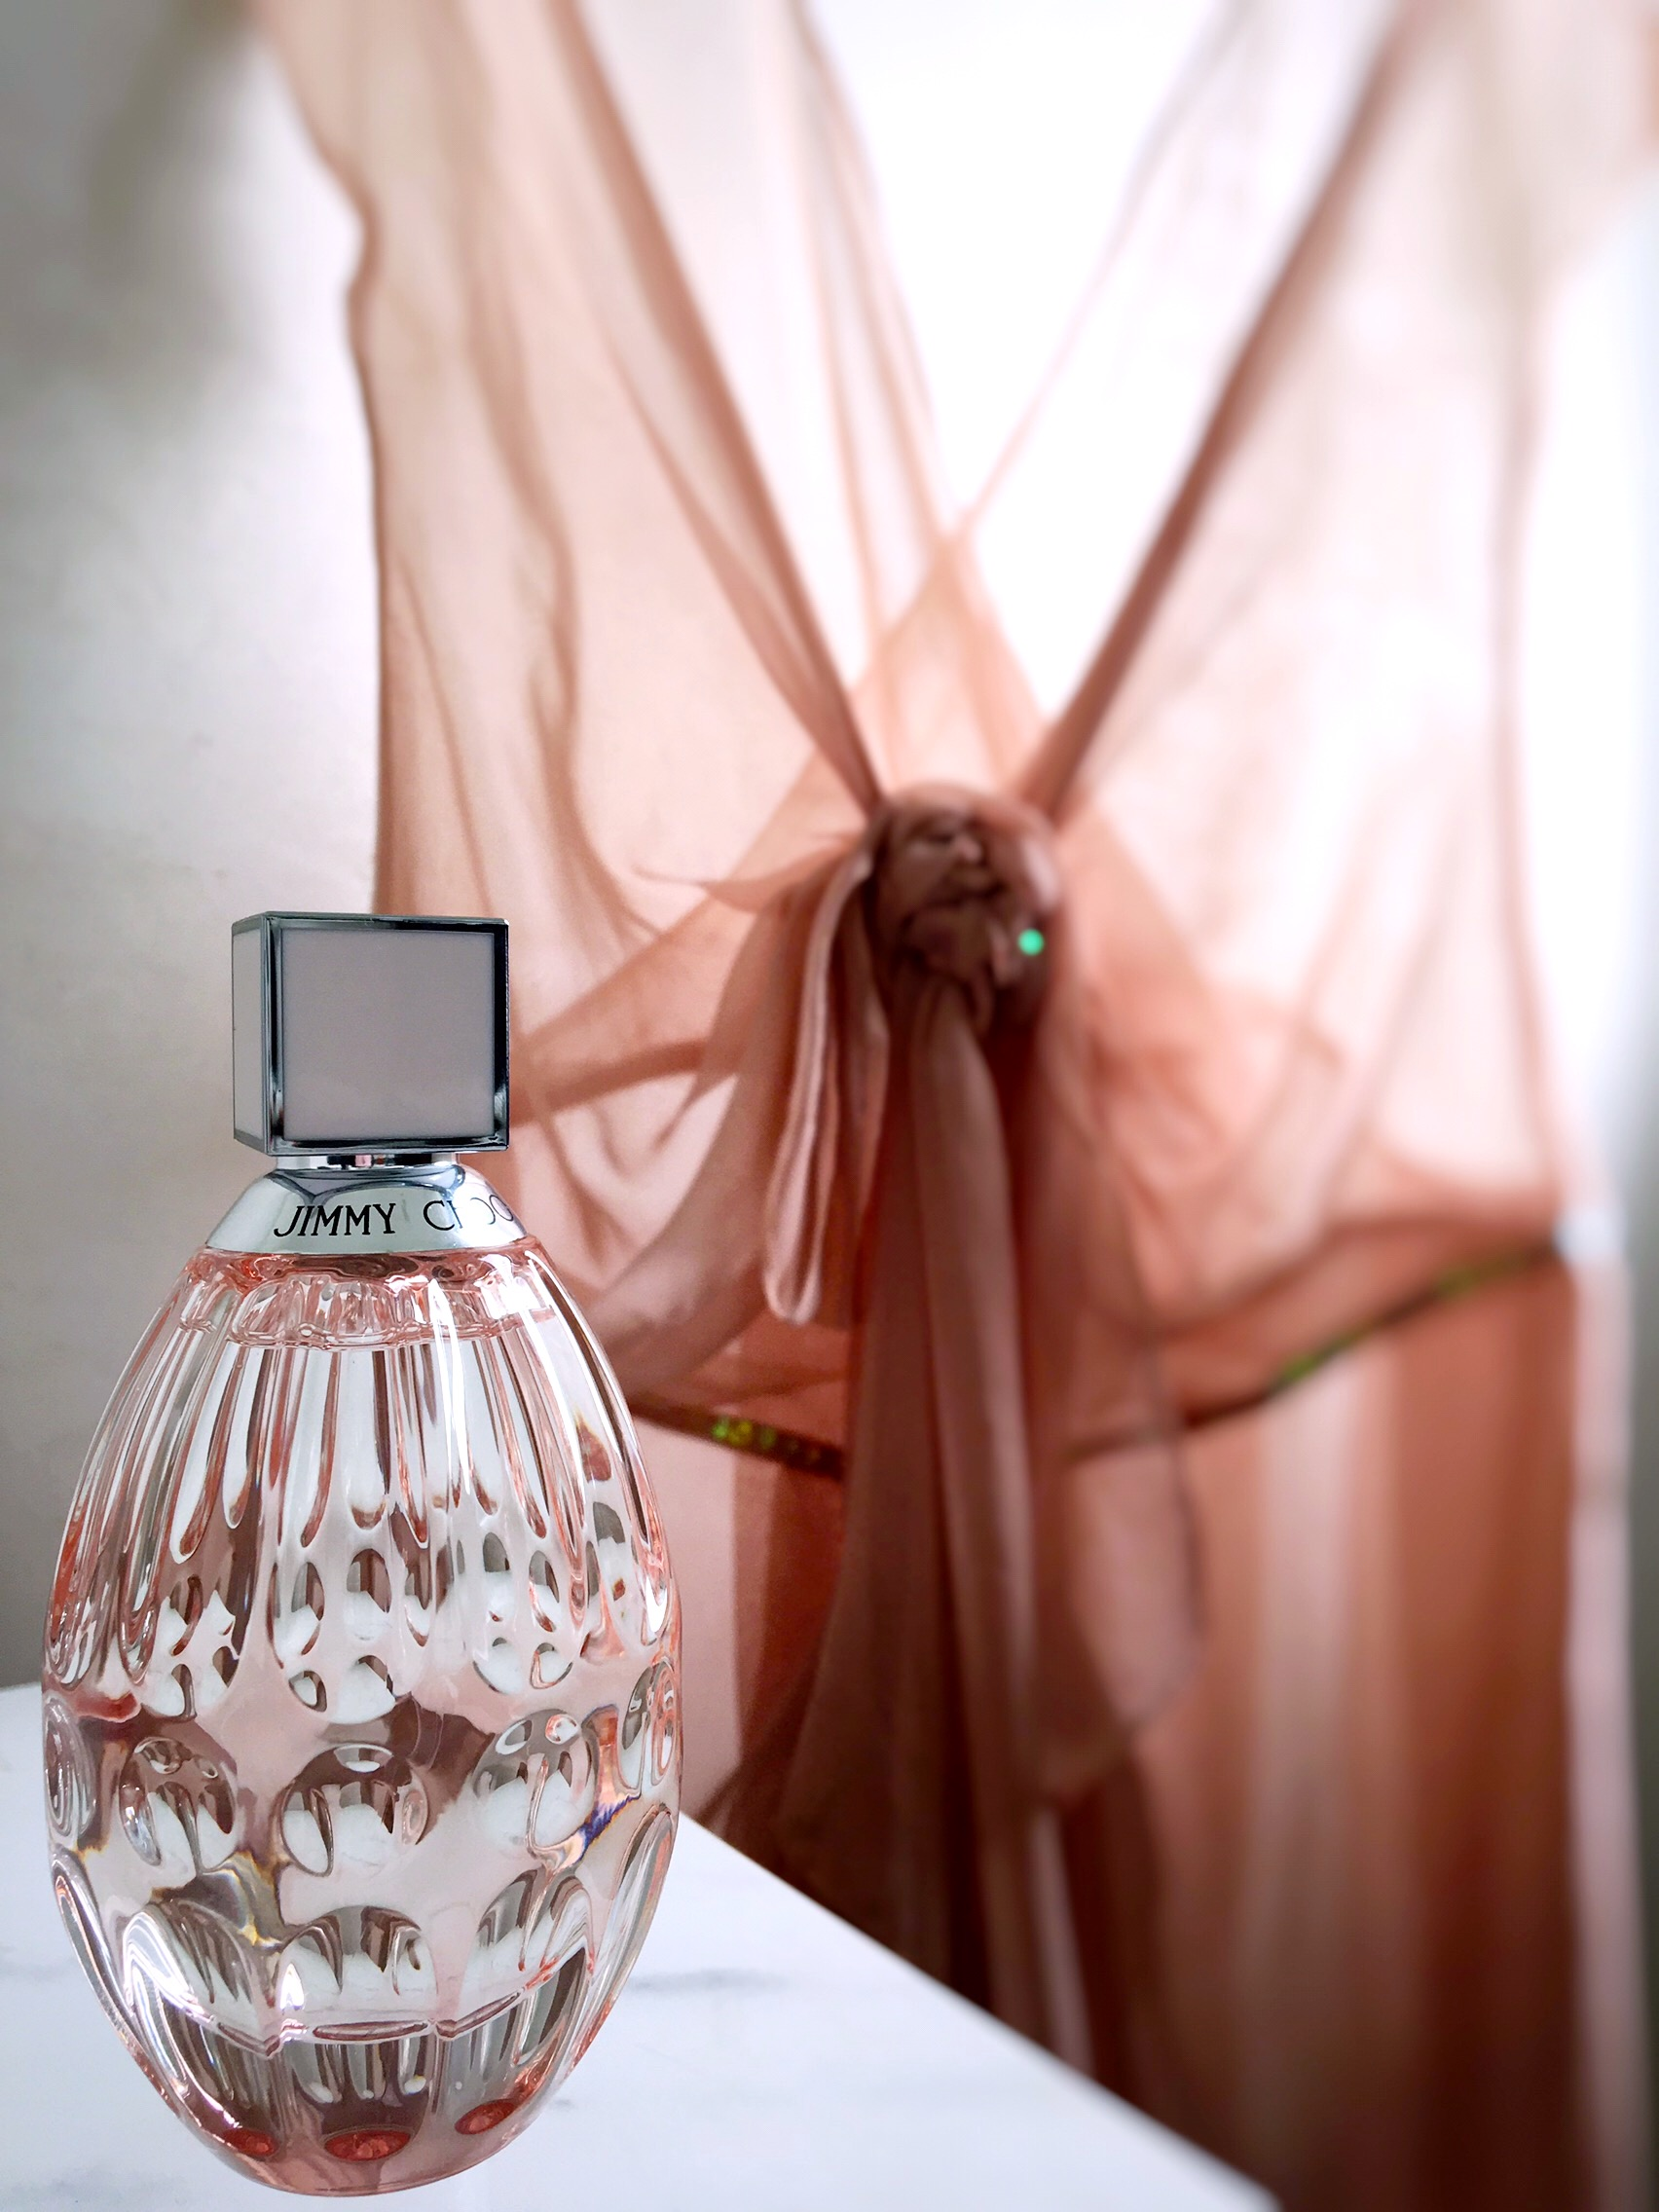 e76efae0157 Jimmy Choo L Eau EDT is the newest offering from the Jimmy Choo fragrance  line. In essence